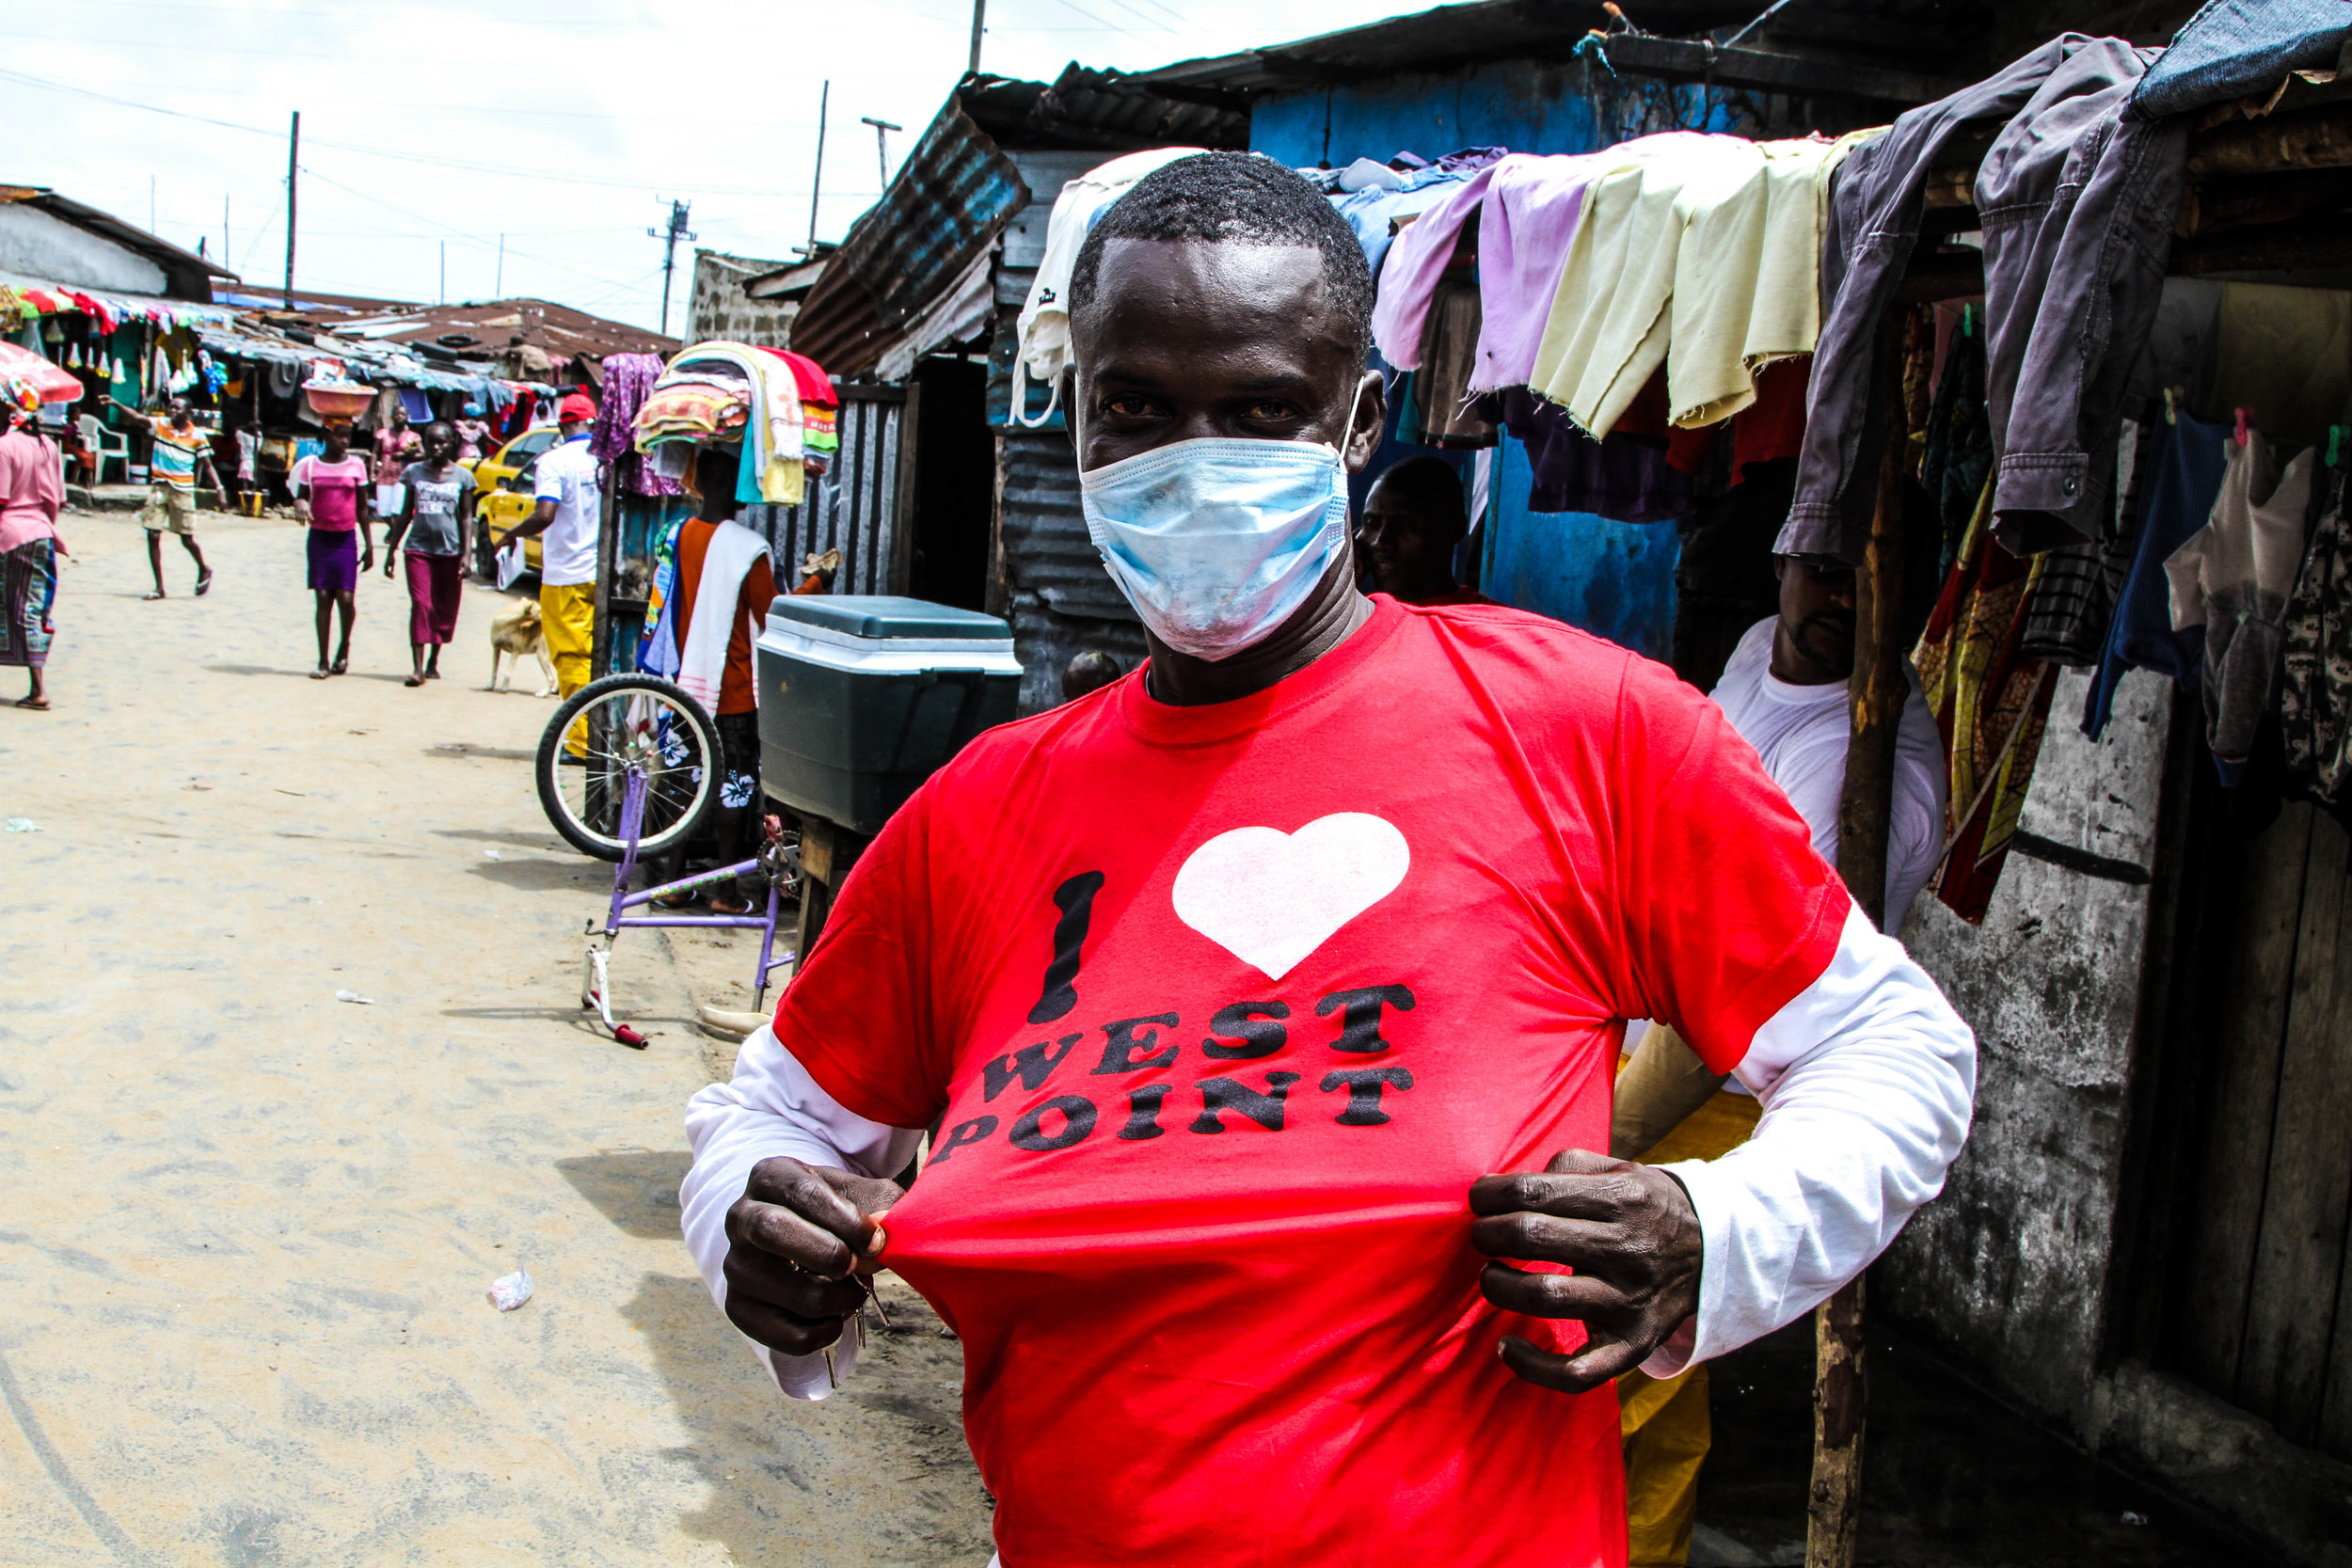 - Piece on the role that community-led organizations played in combatting Ebola in Liberia, for The Guardian. Published April 2015.